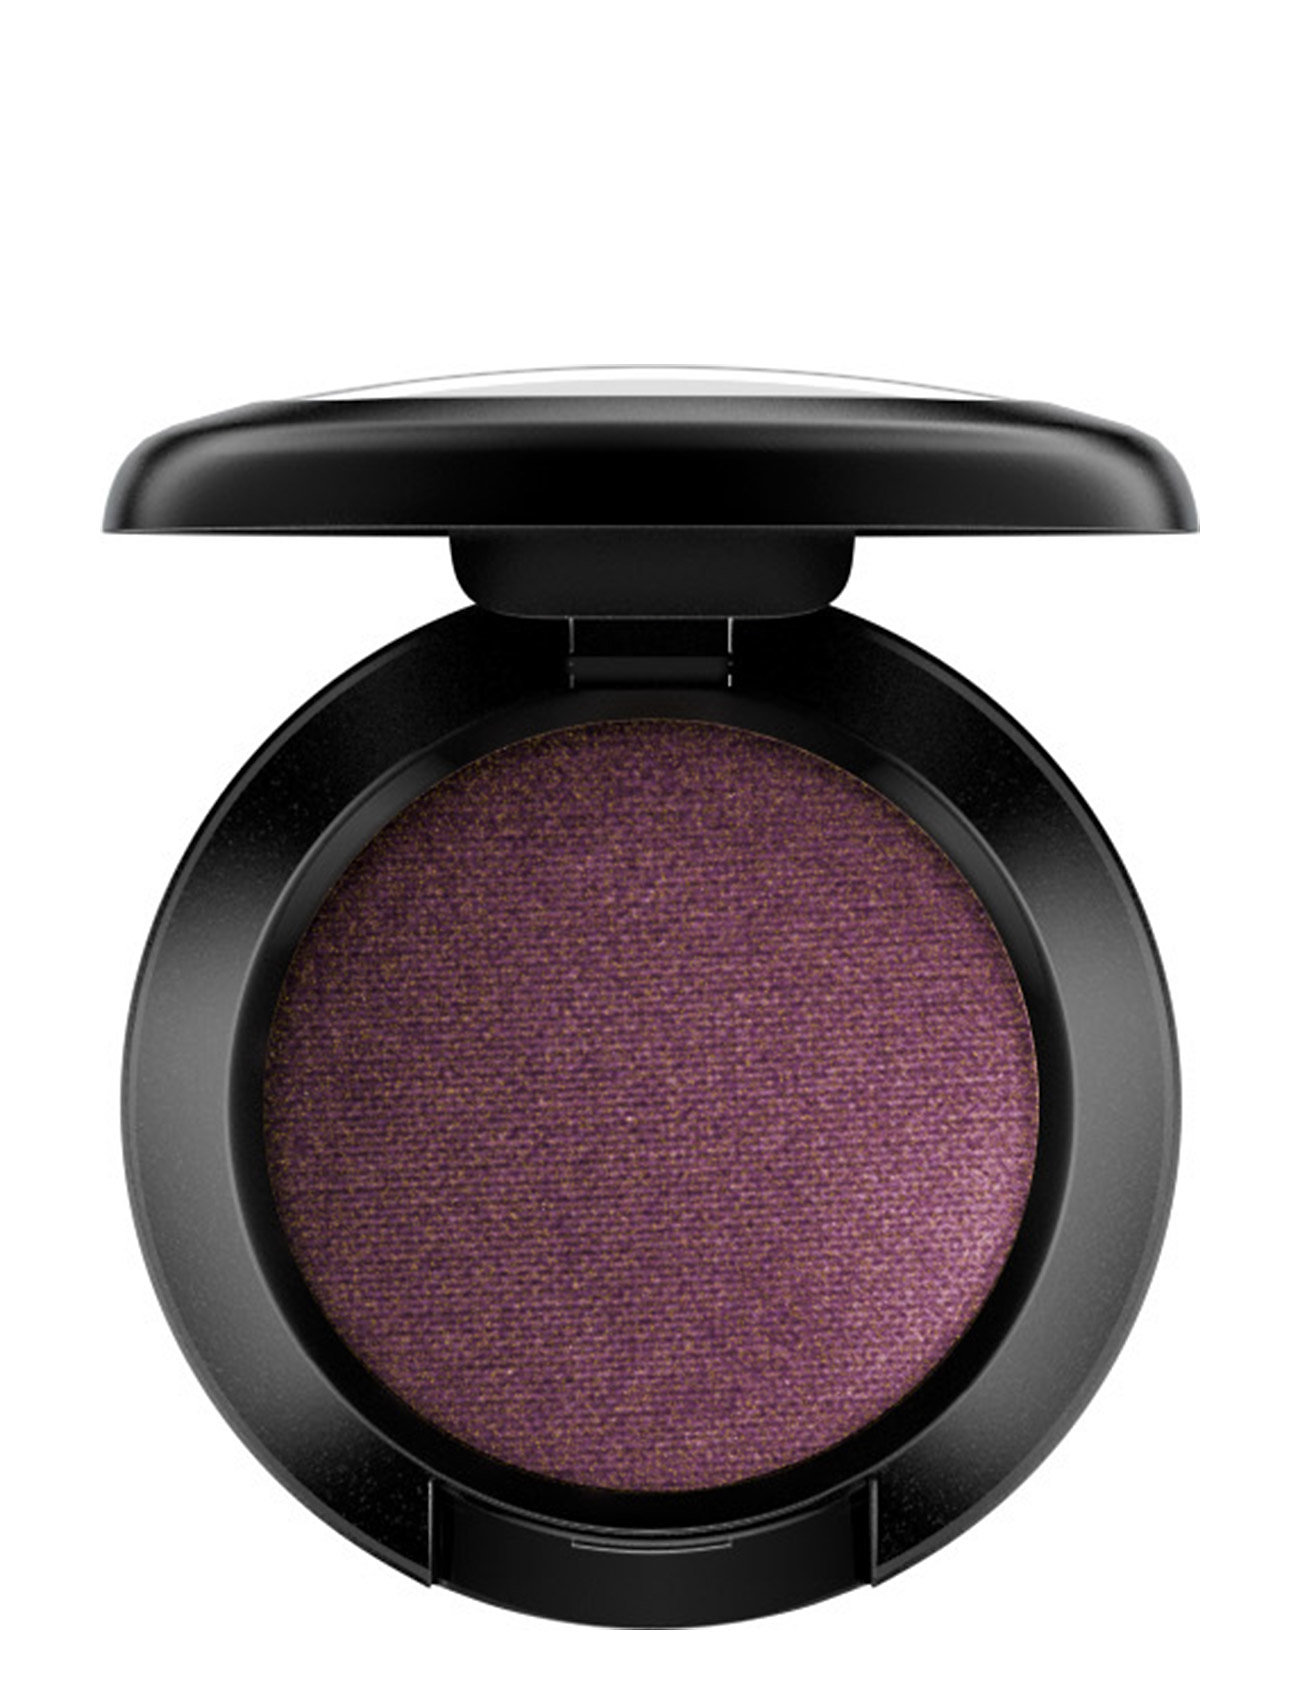 Image of Velvet Beauty Marked Beauty WOMEN Makeup Eyes Eyeshadow - Not Palettes Lilla M.A.C. (3067517113)